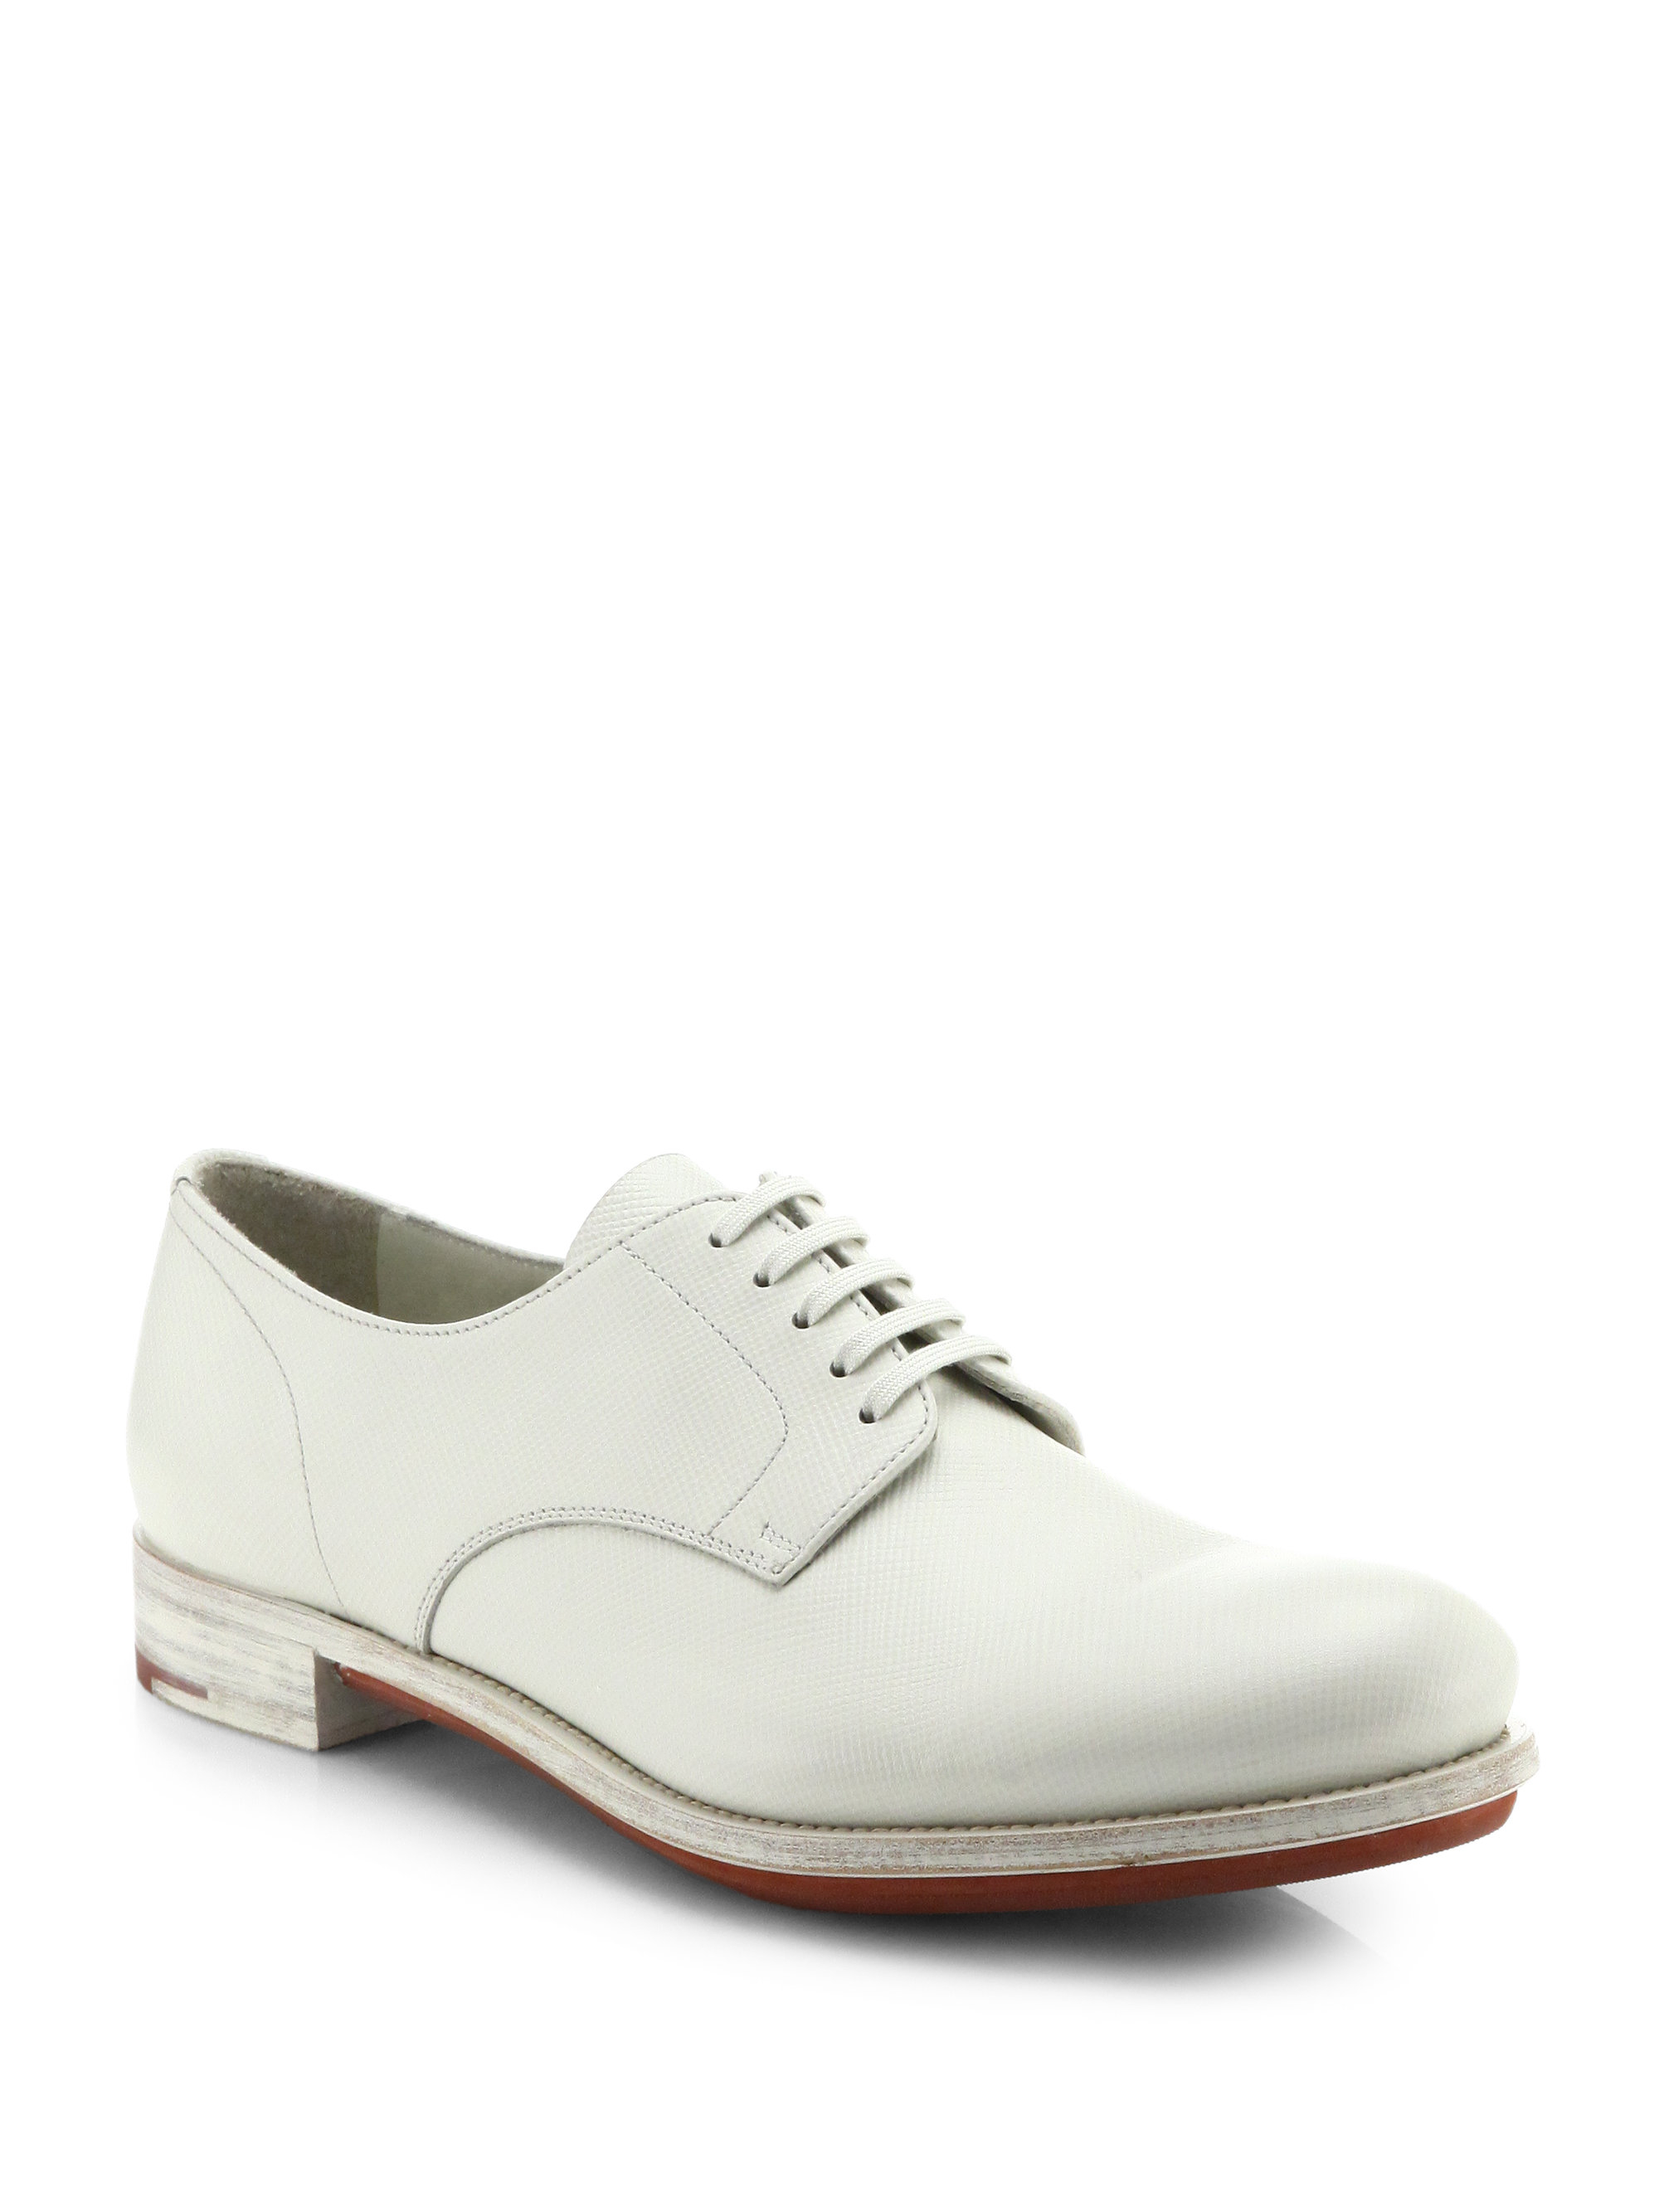 prada saffiano leather derby shoes in white for light